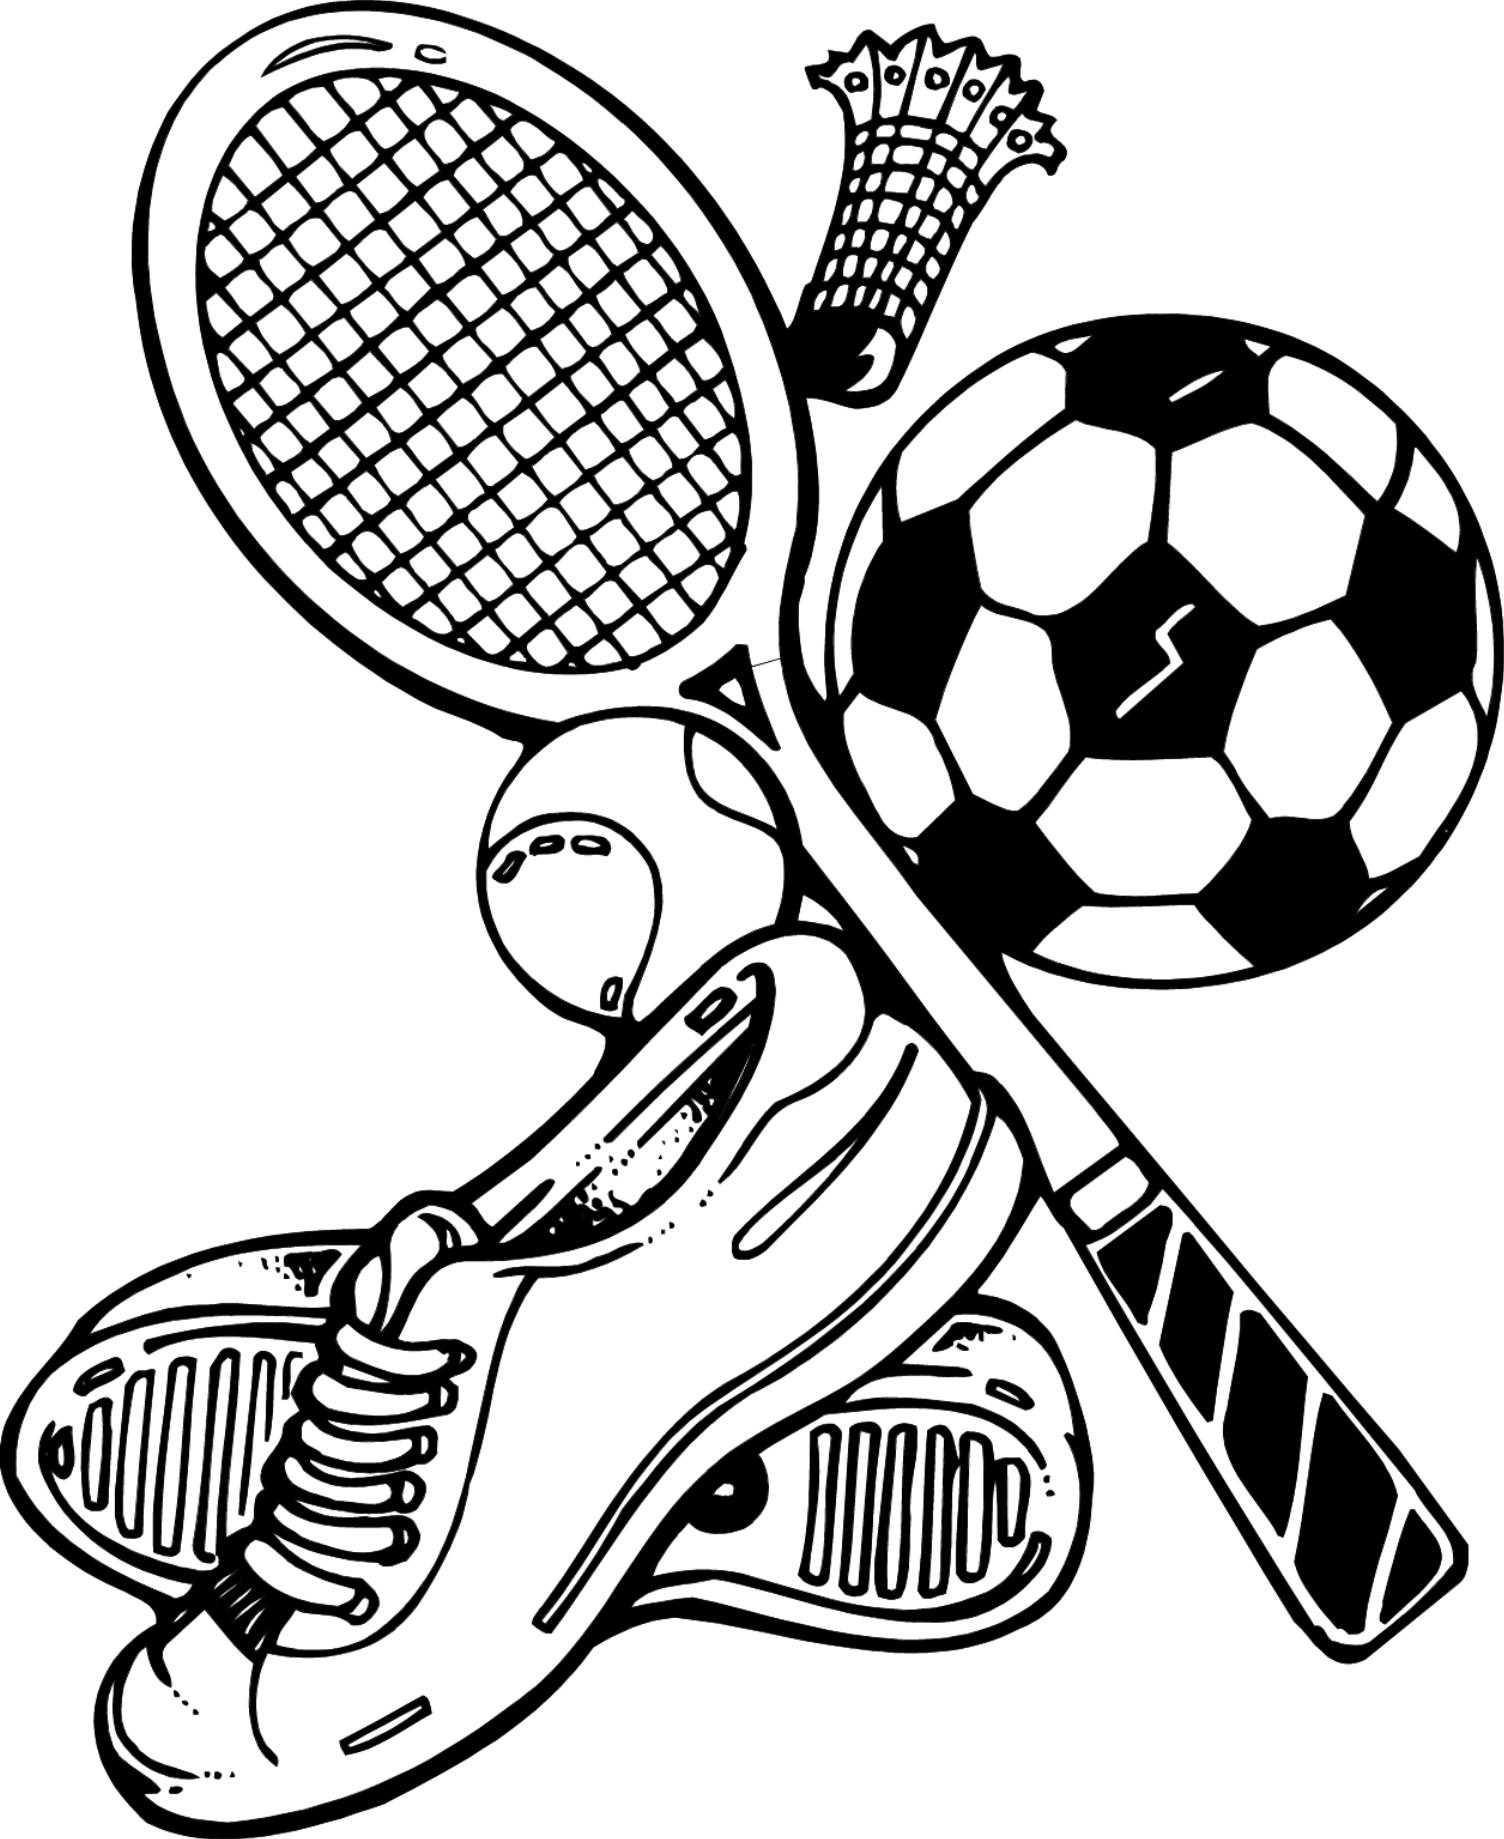 Cool clipart sport. Physical drawing at getdrawings